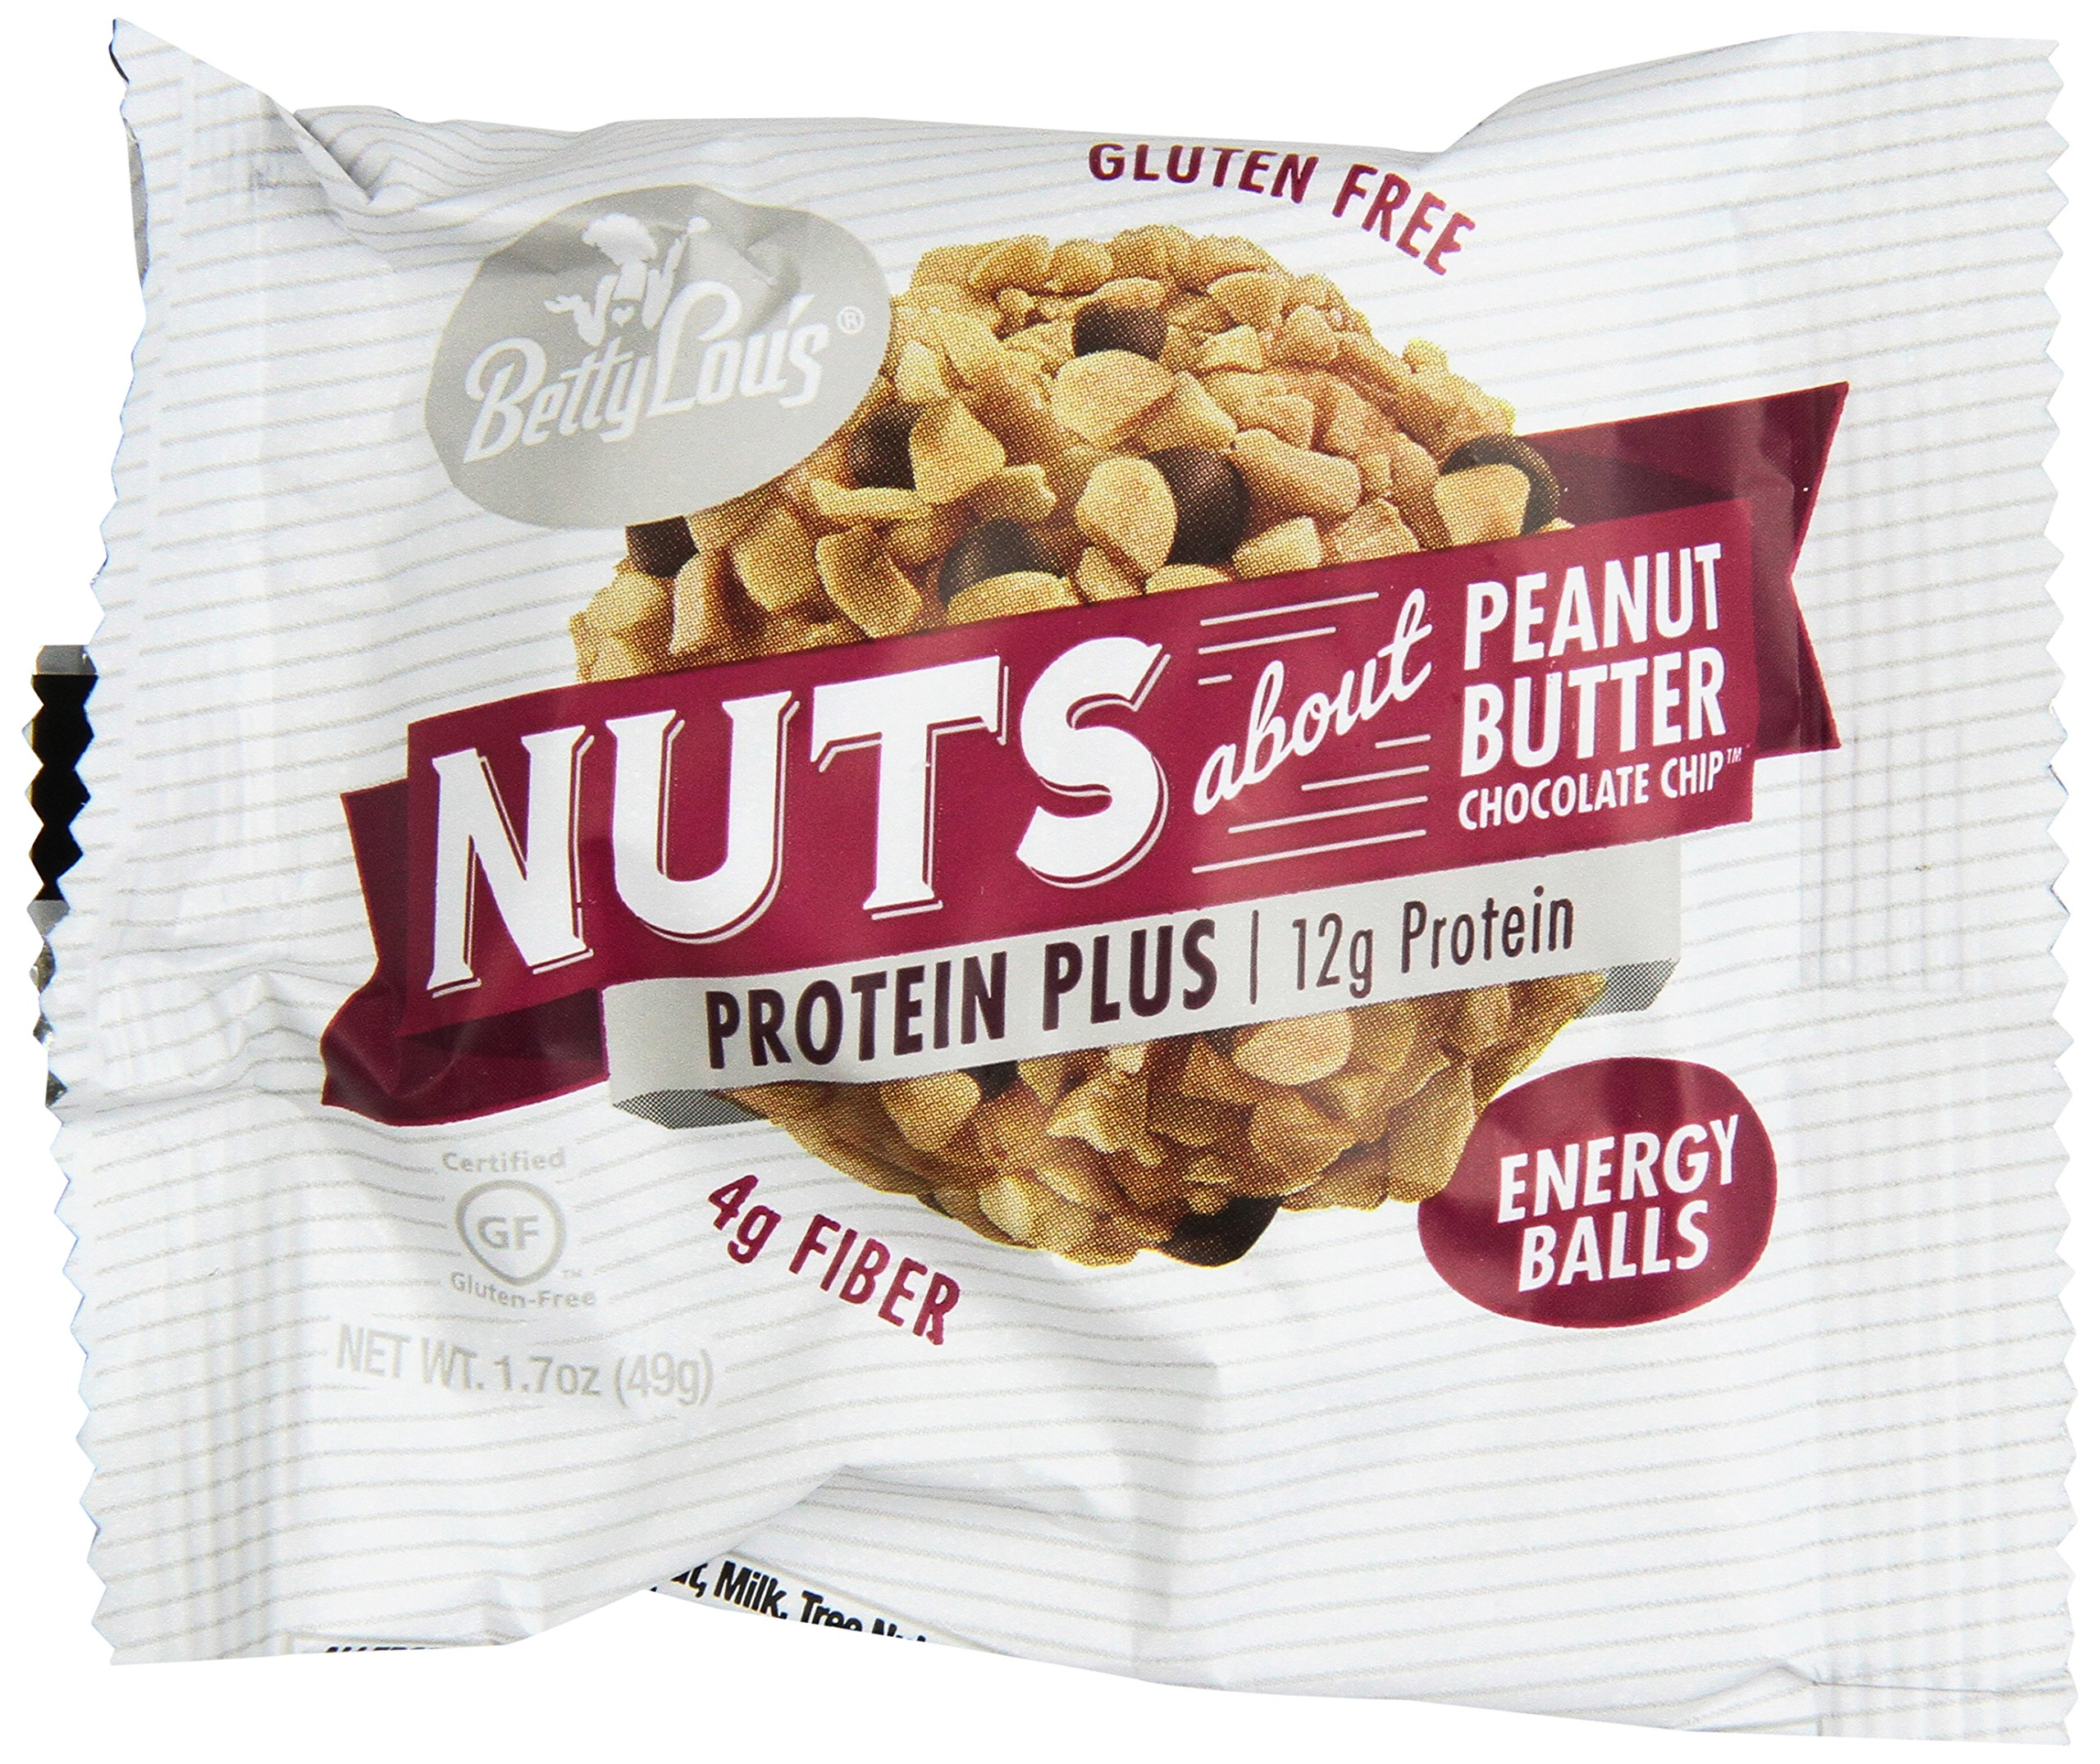 Betty Lou's Protein Plus Peanut Butter Choc. Chip 1.7oz Protein Balls - 12 Count Box by Betty Lou's